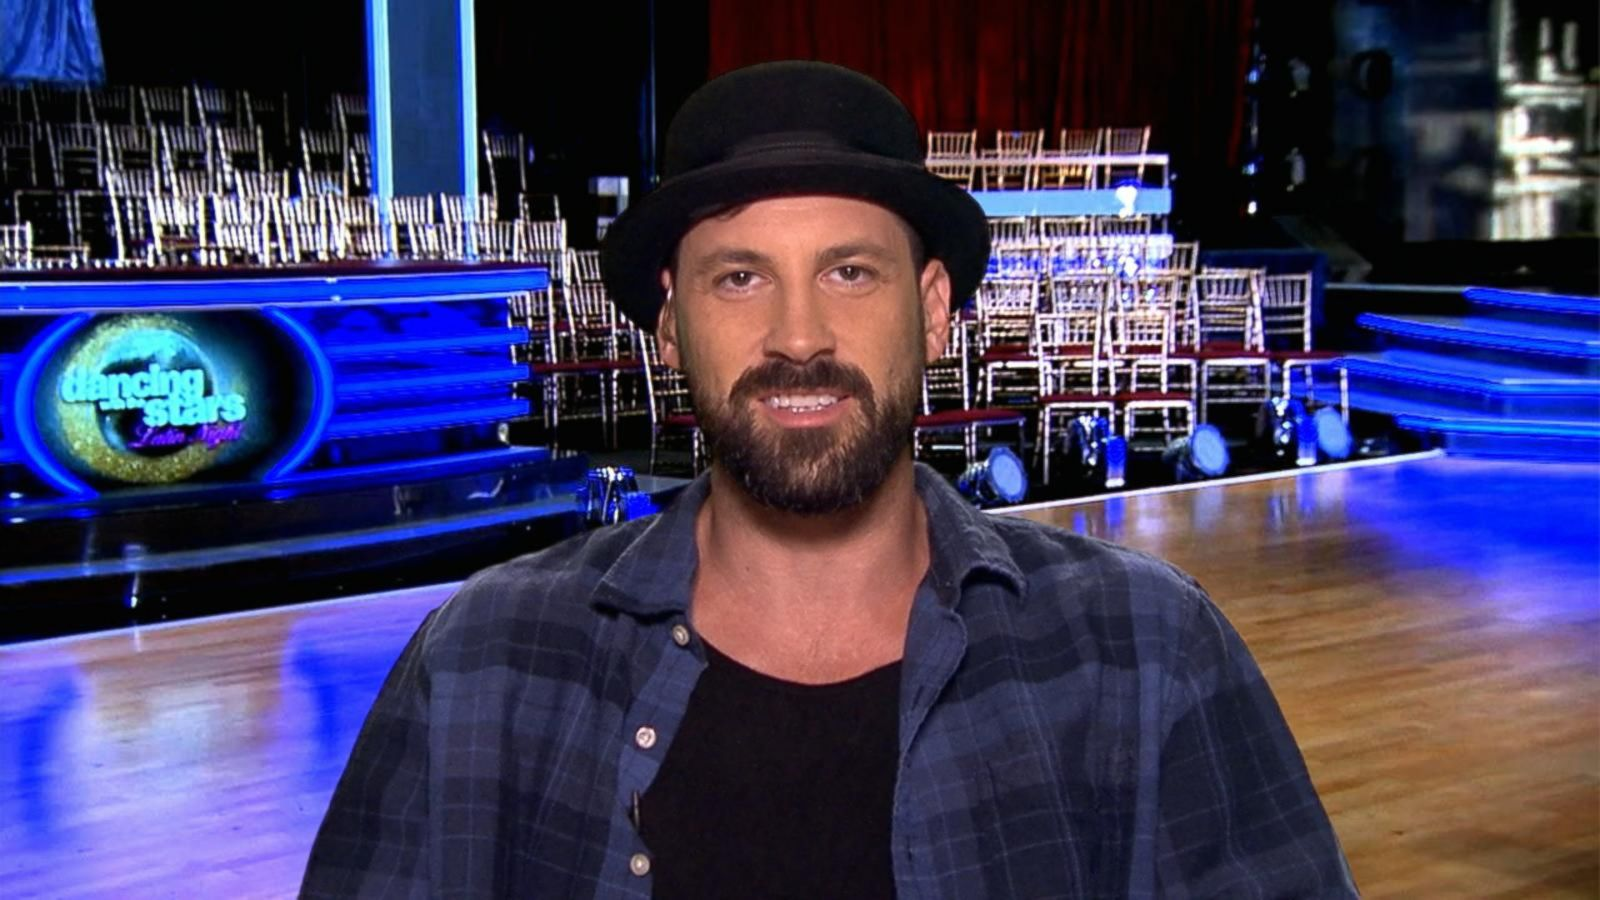 VIDEO: 'DWTS': Maksim Chmerkovskiy Makes a Big Announcement on 'GMA'